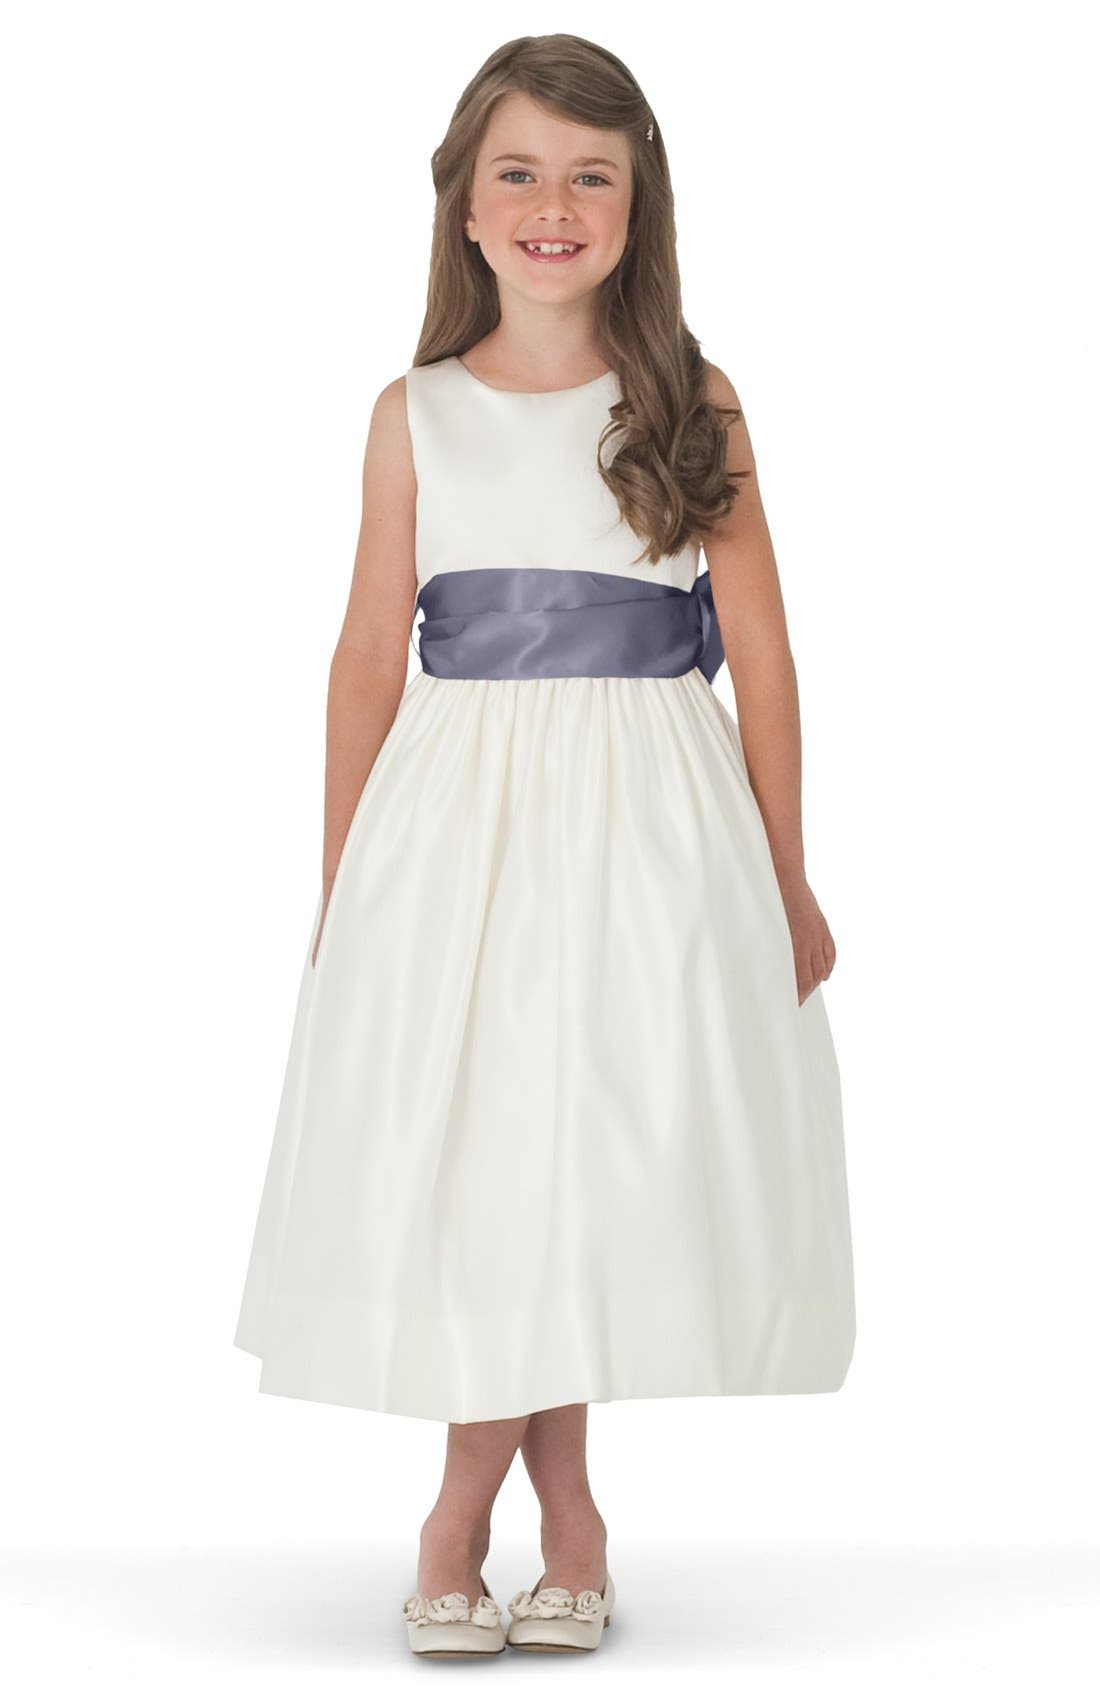 Us Angels Sleeveless Satin Dress with Contrast Sash (Toddler Girls, Little Girls & Big Girls)